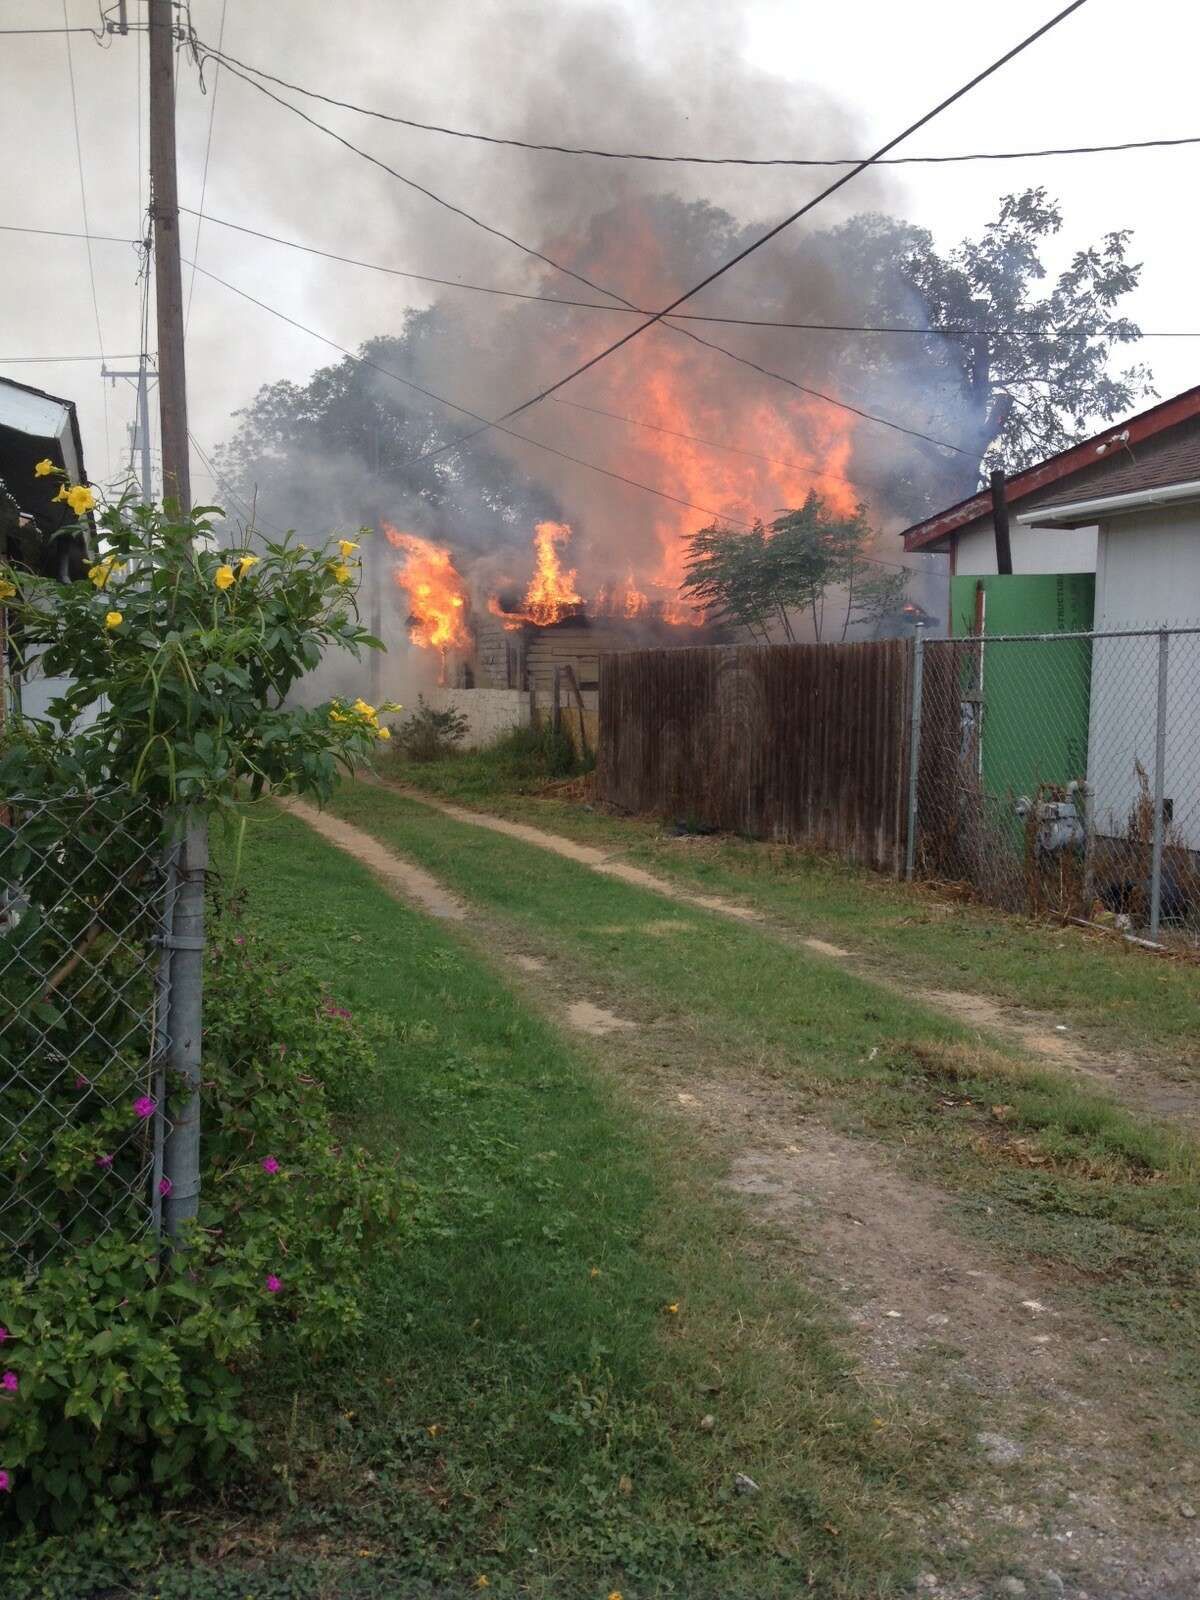 San Antonio firefighters responded to a structure fire in the 2900 block of West Gerald Avenue on Nov. 8, 2017.